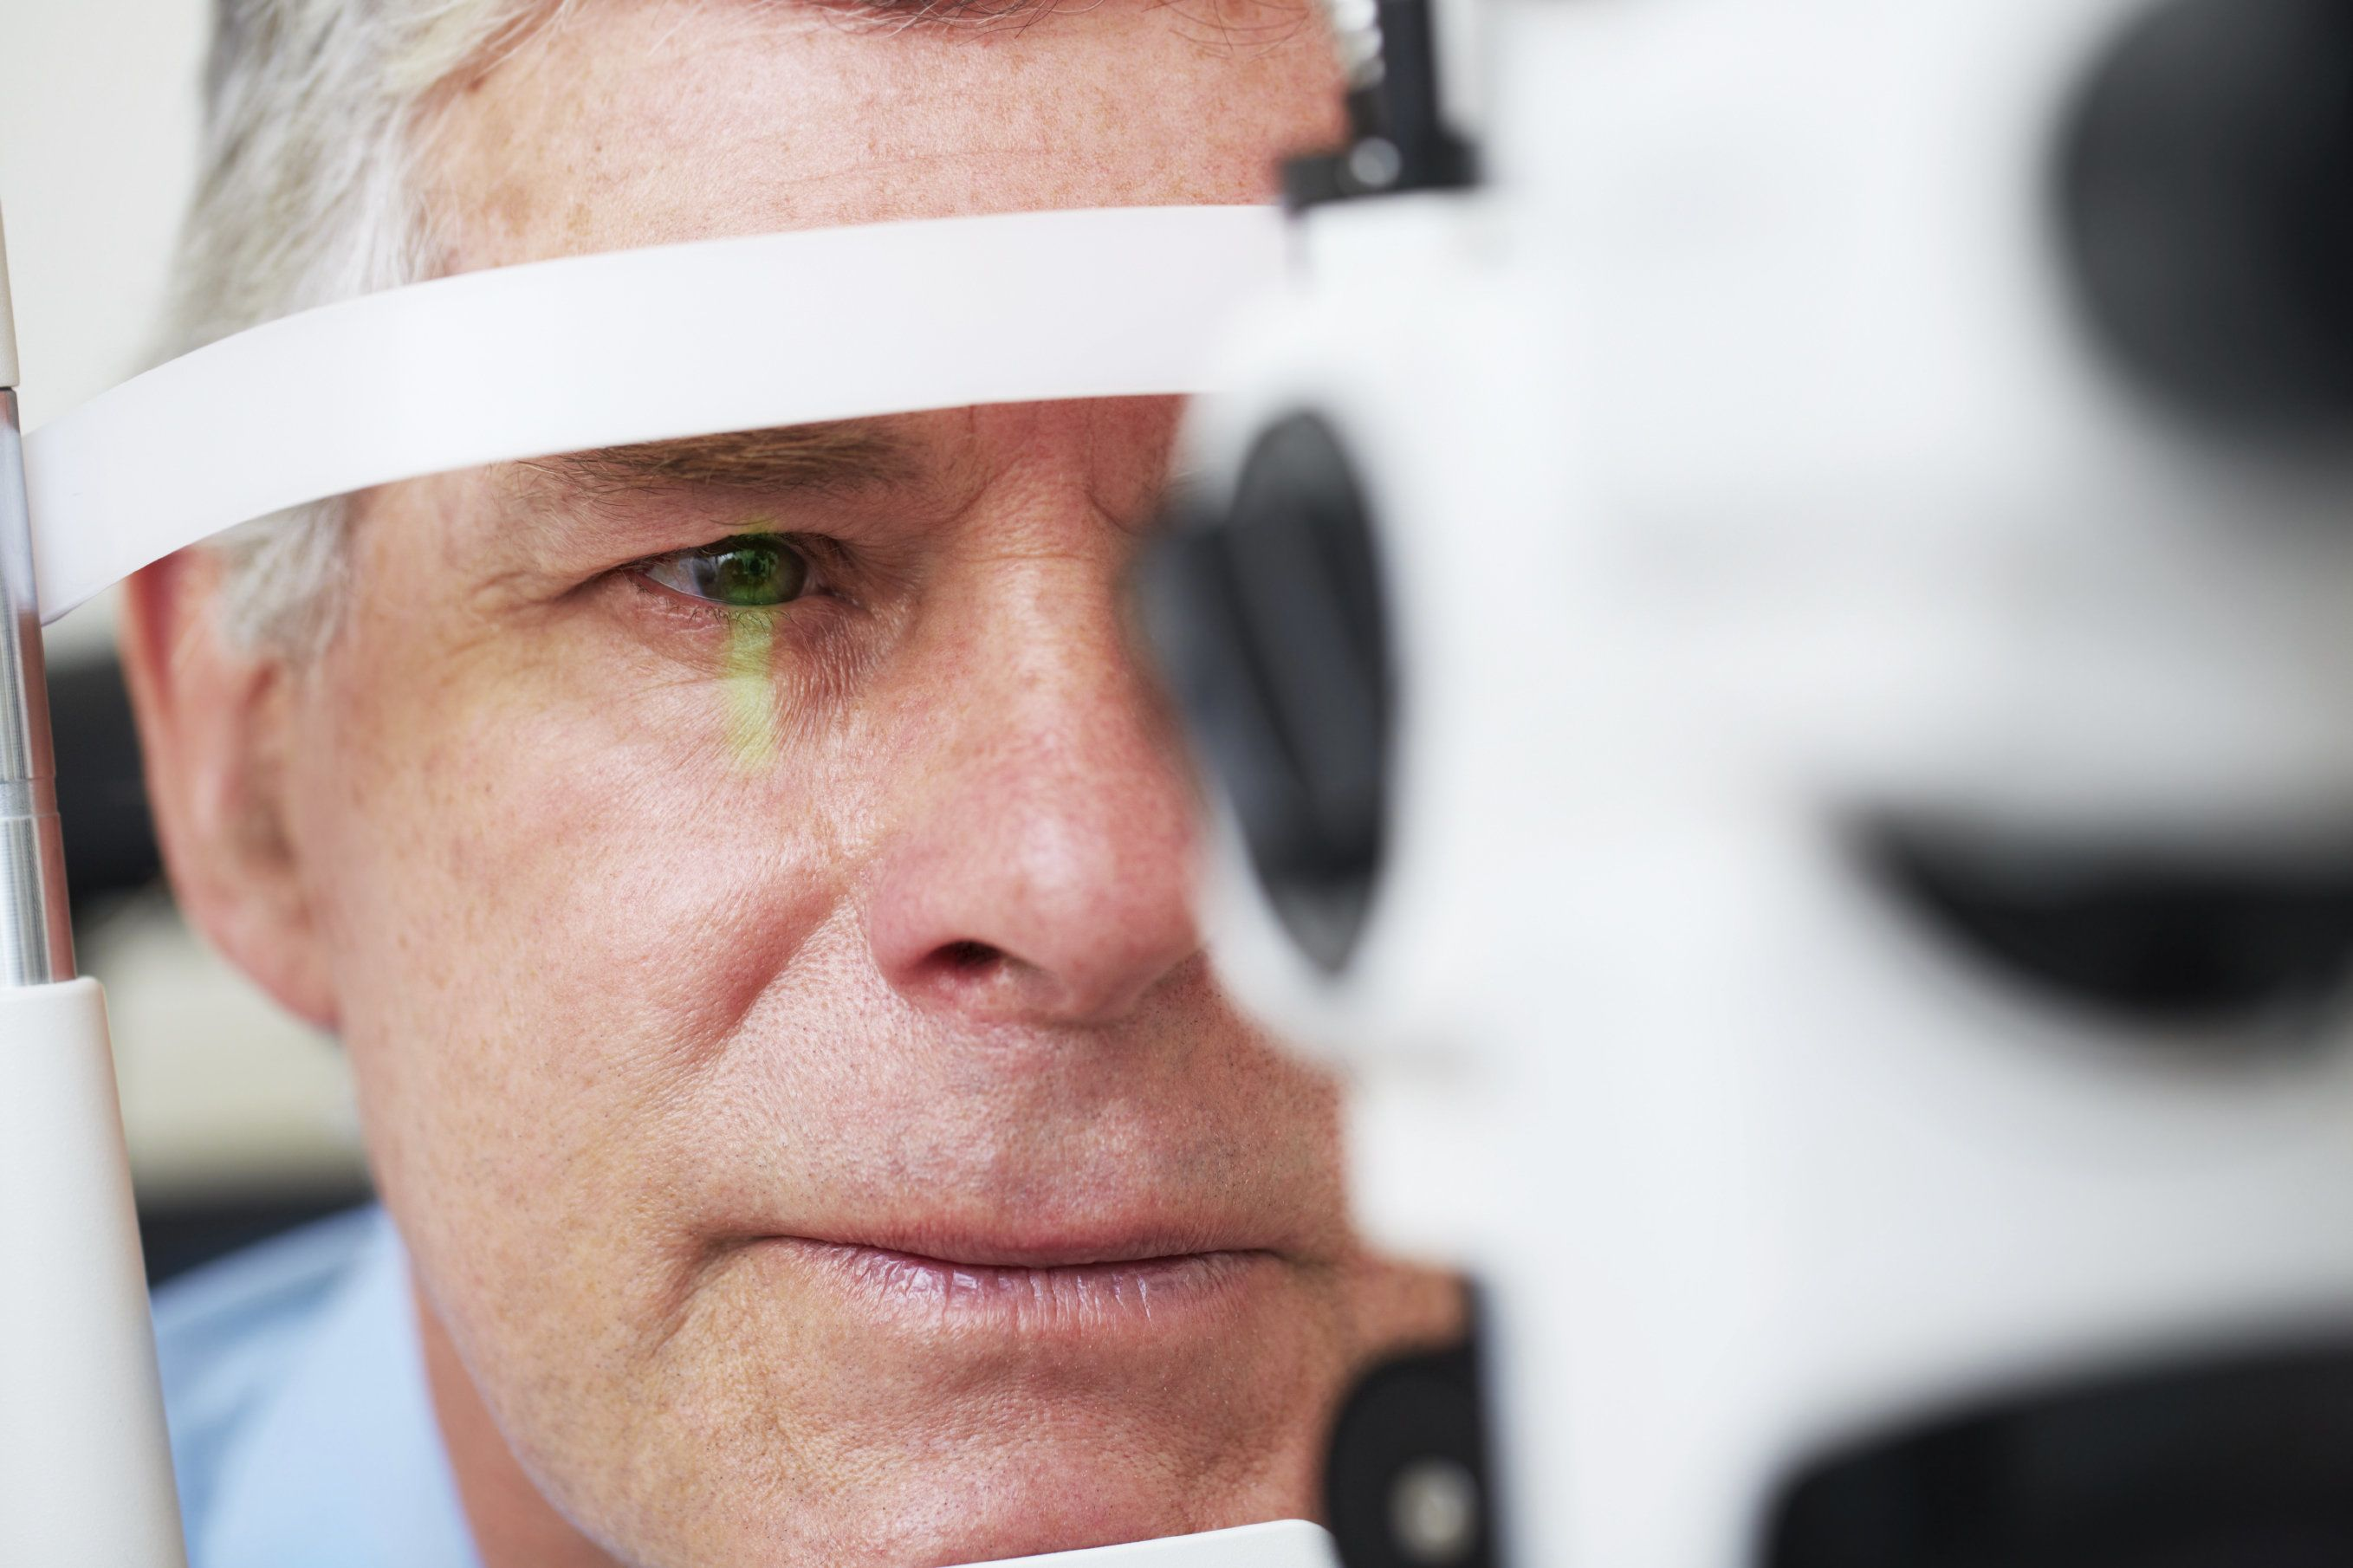 A man undergoing an eye exam